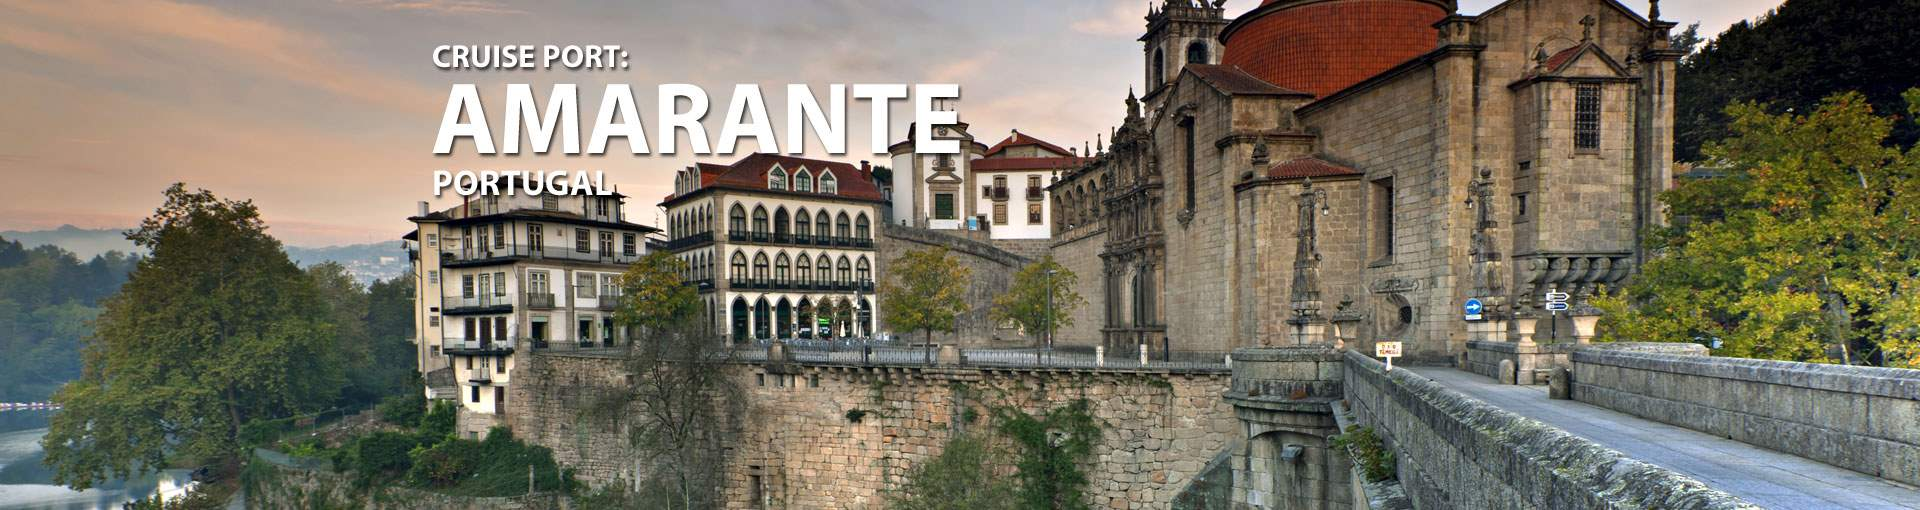 Cruises to Amarante, Portugal